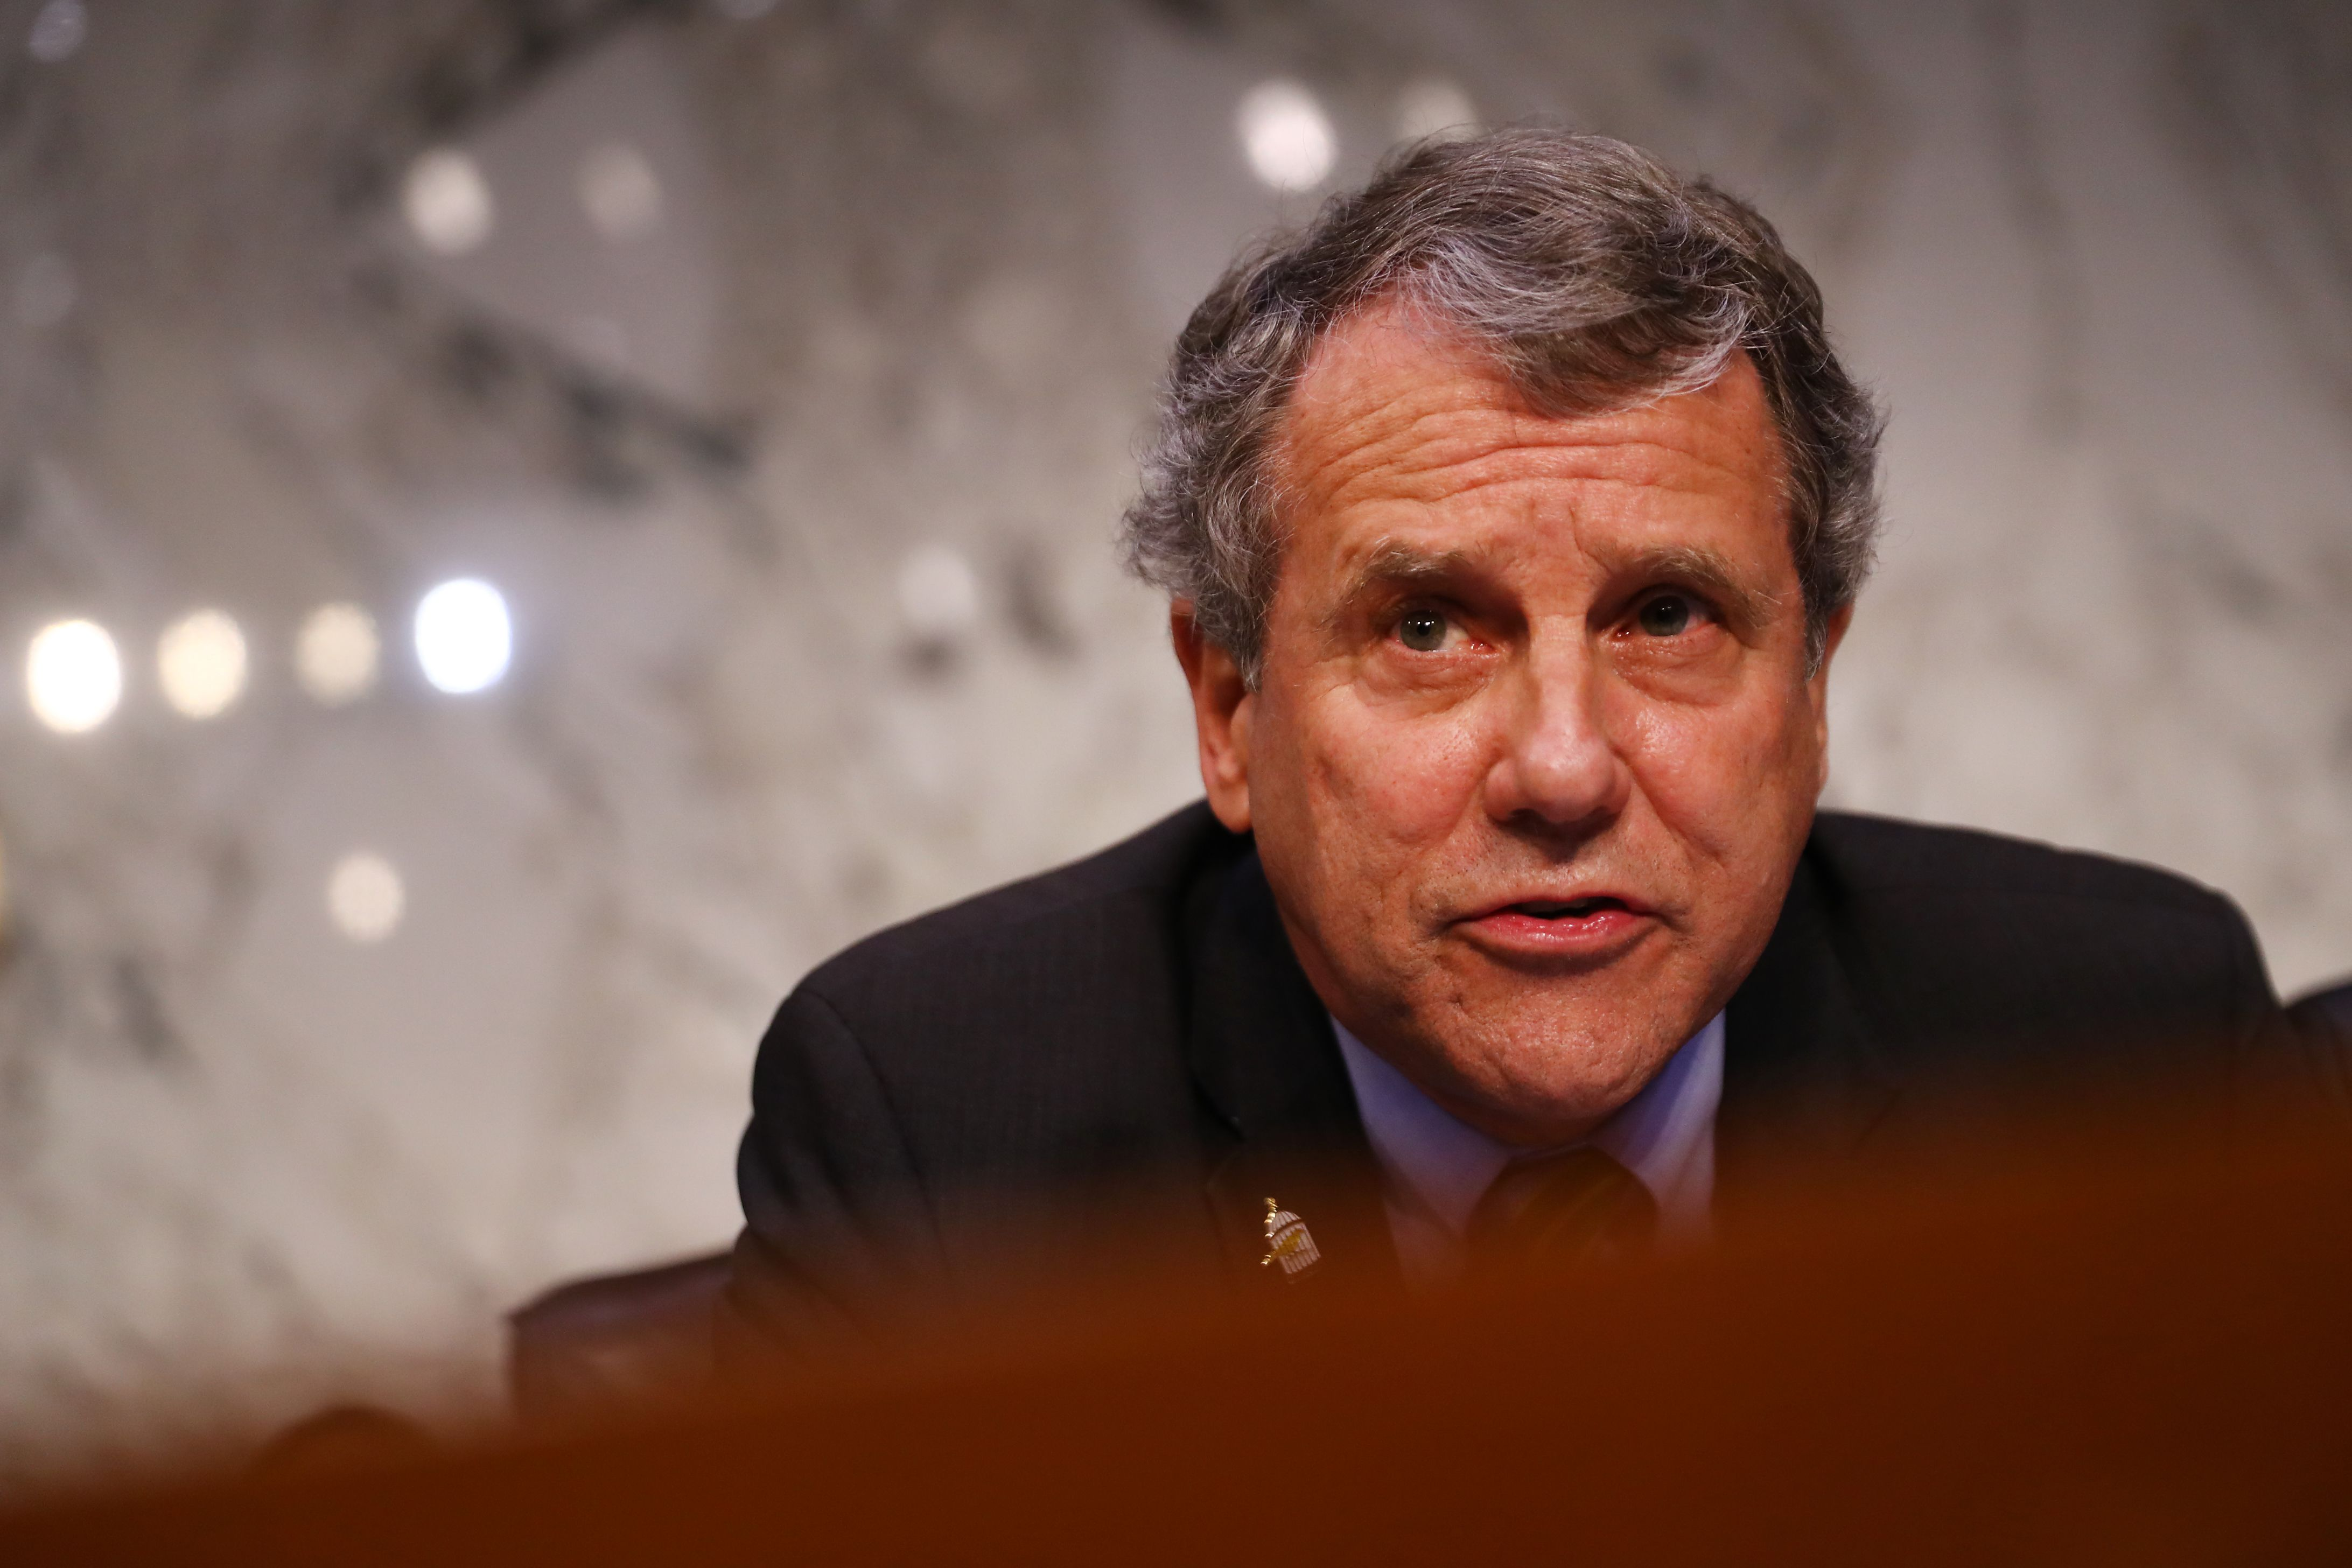 Sen. Sherrod Brown slams Facebook's cryptocurrency ambitions